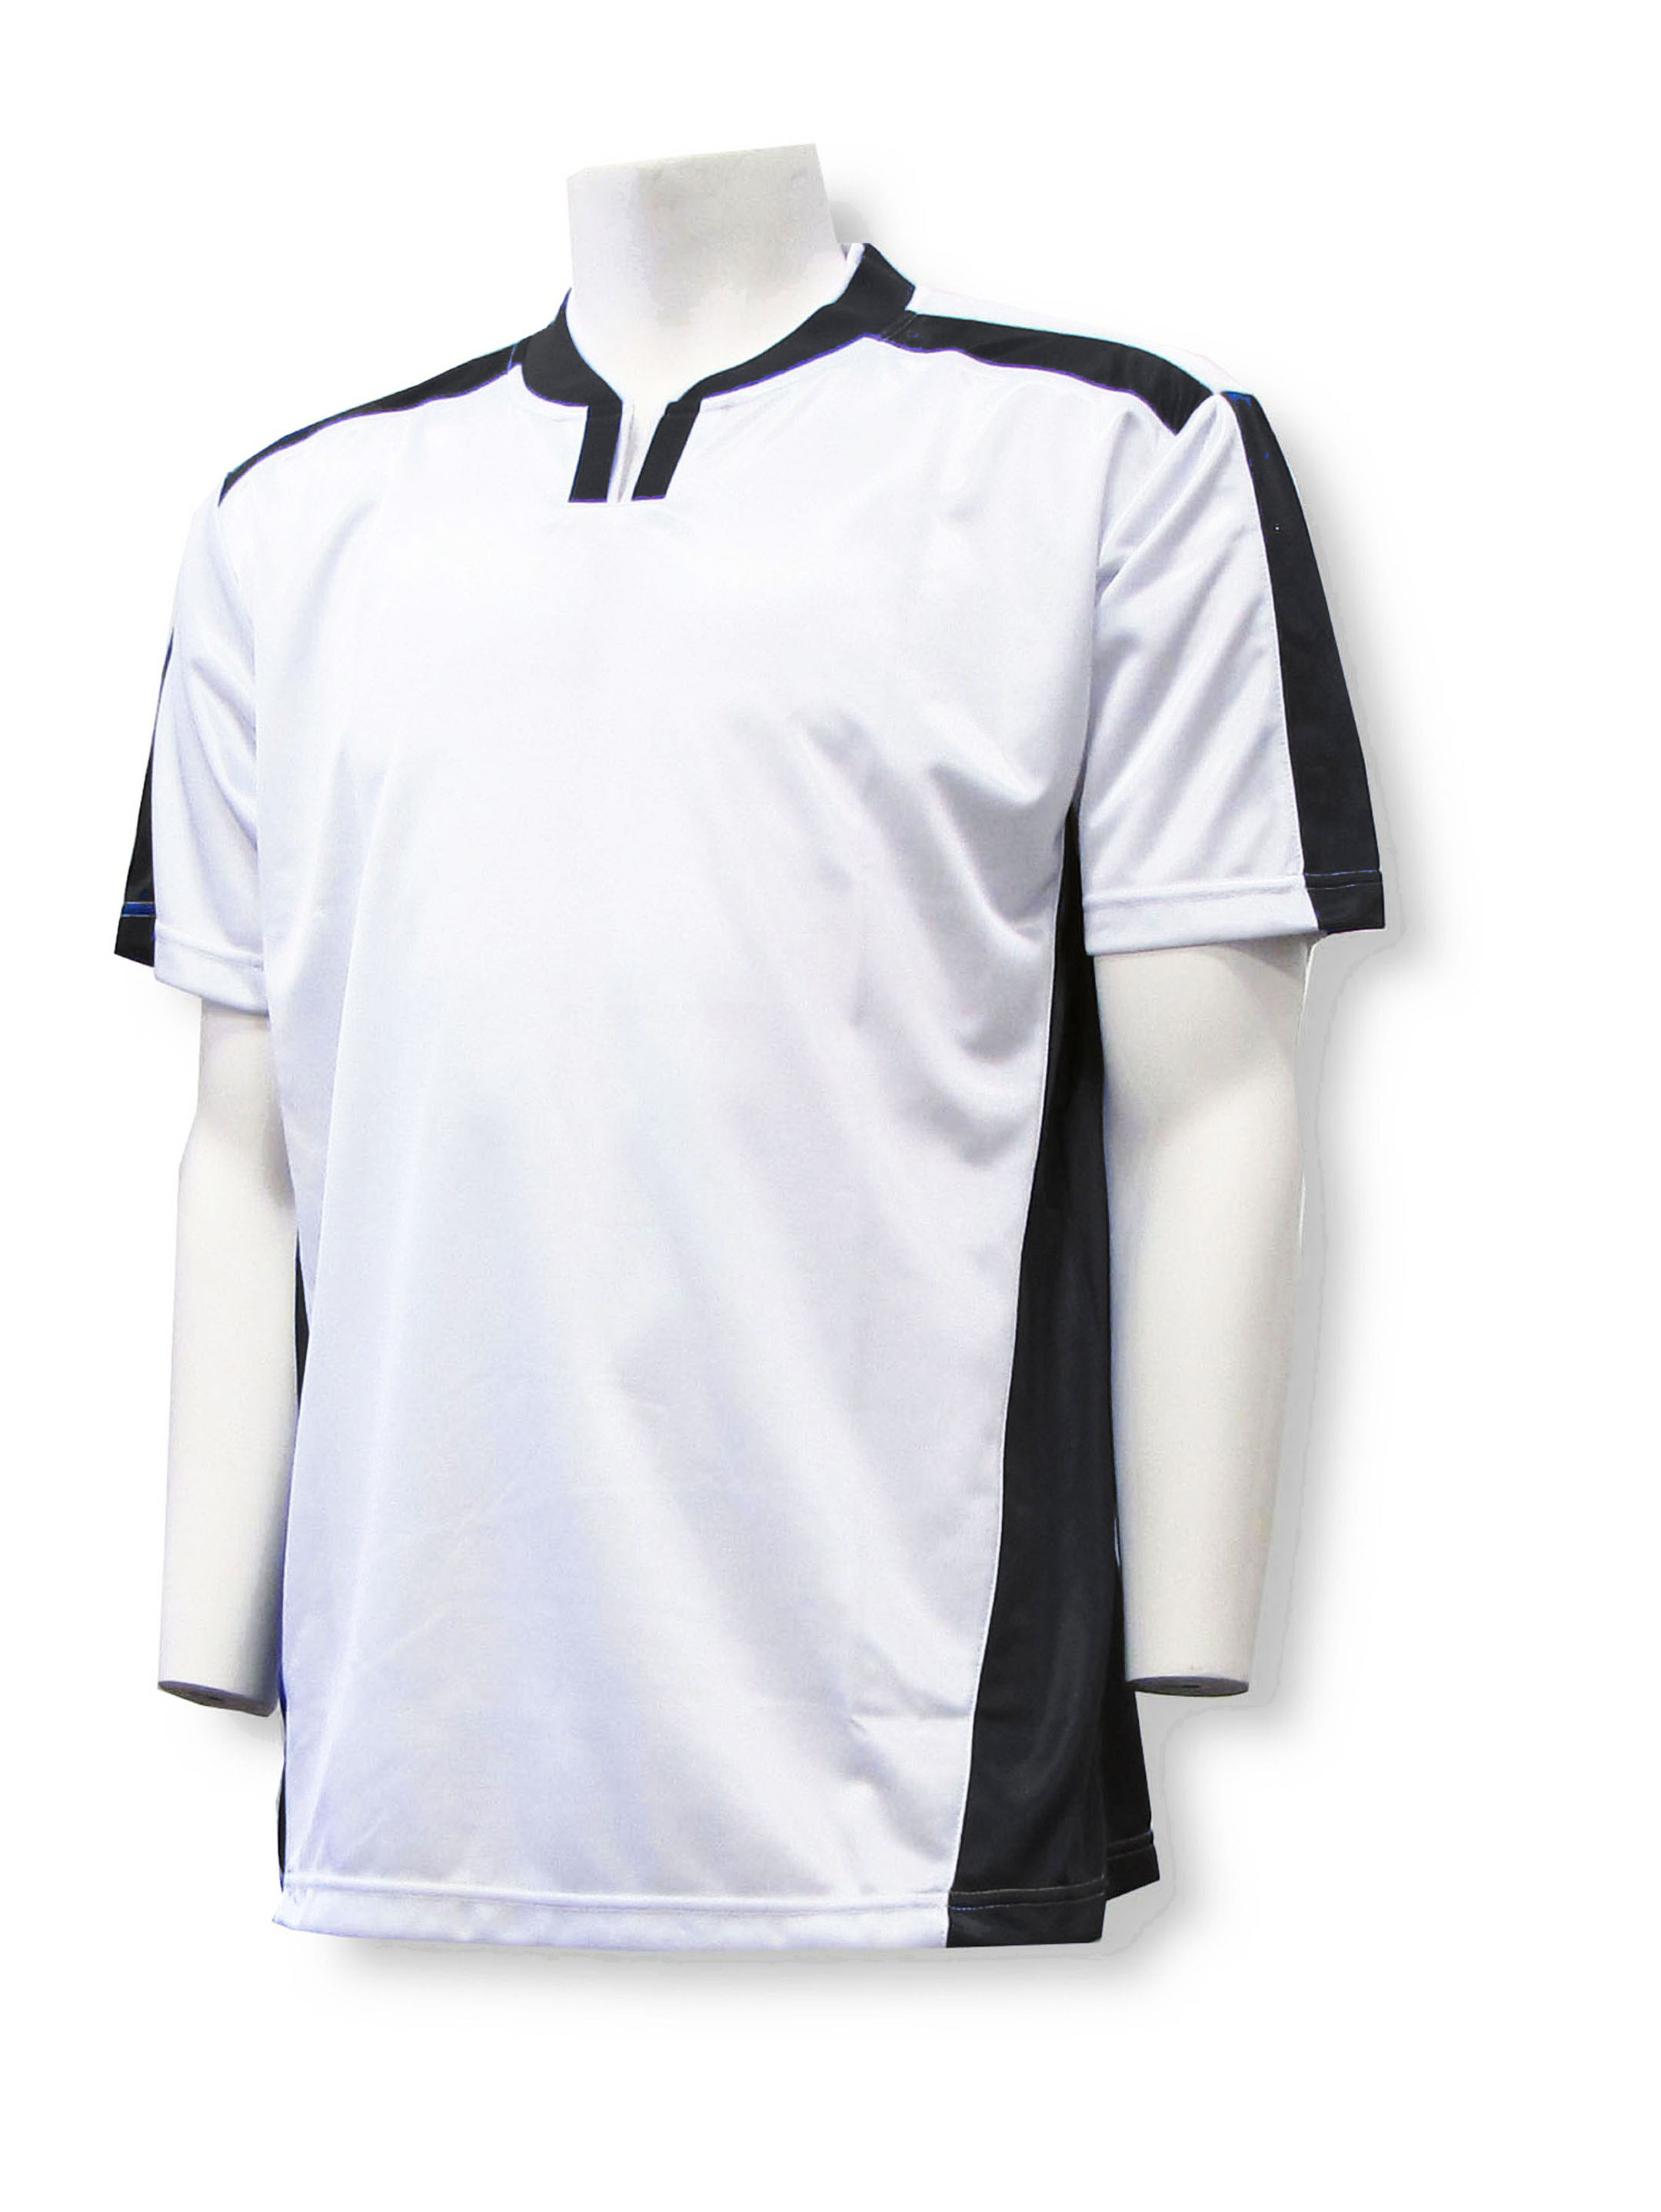 Winchester Soccer Jersey in white/black by Code Four Athletics